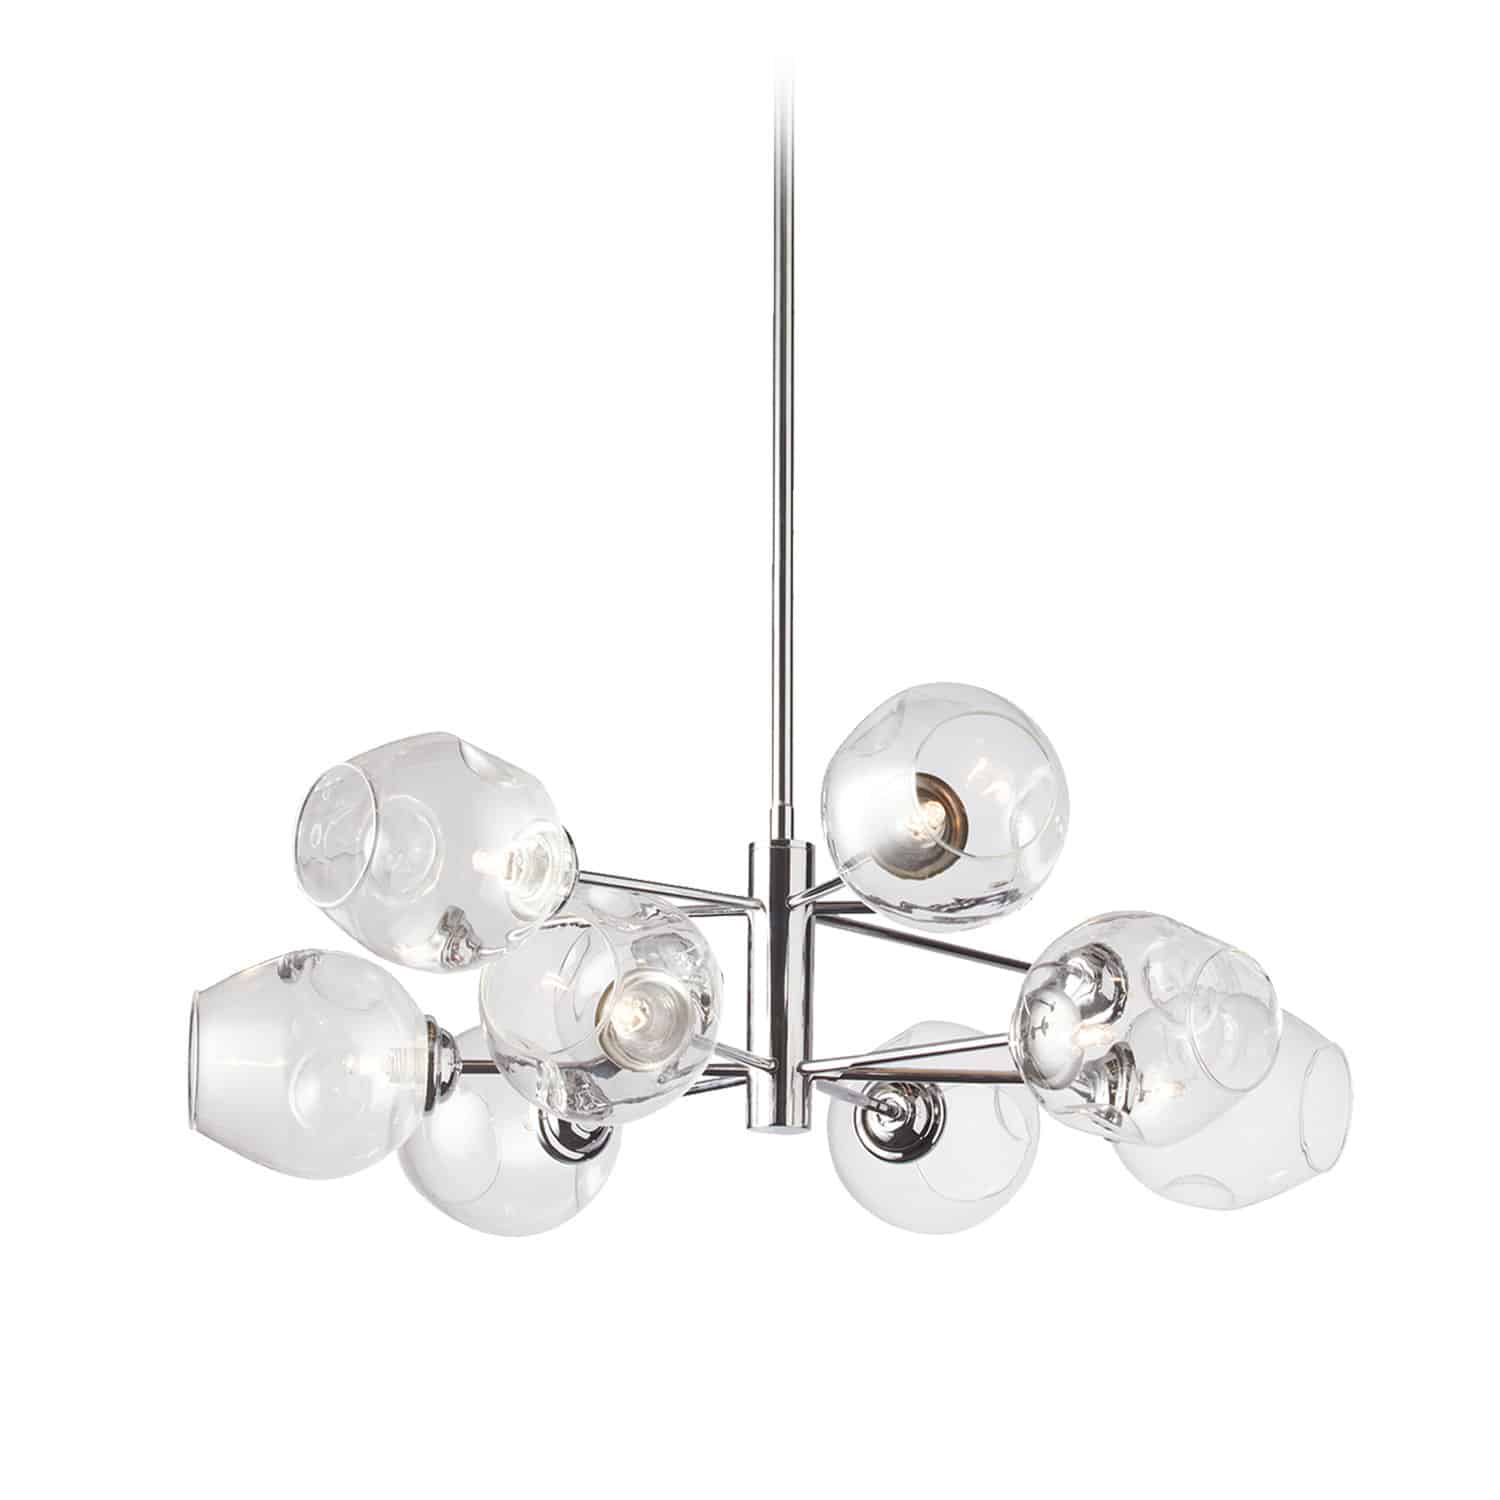 8 Light Pendant, Polished Chrome Finish with Clear Glass